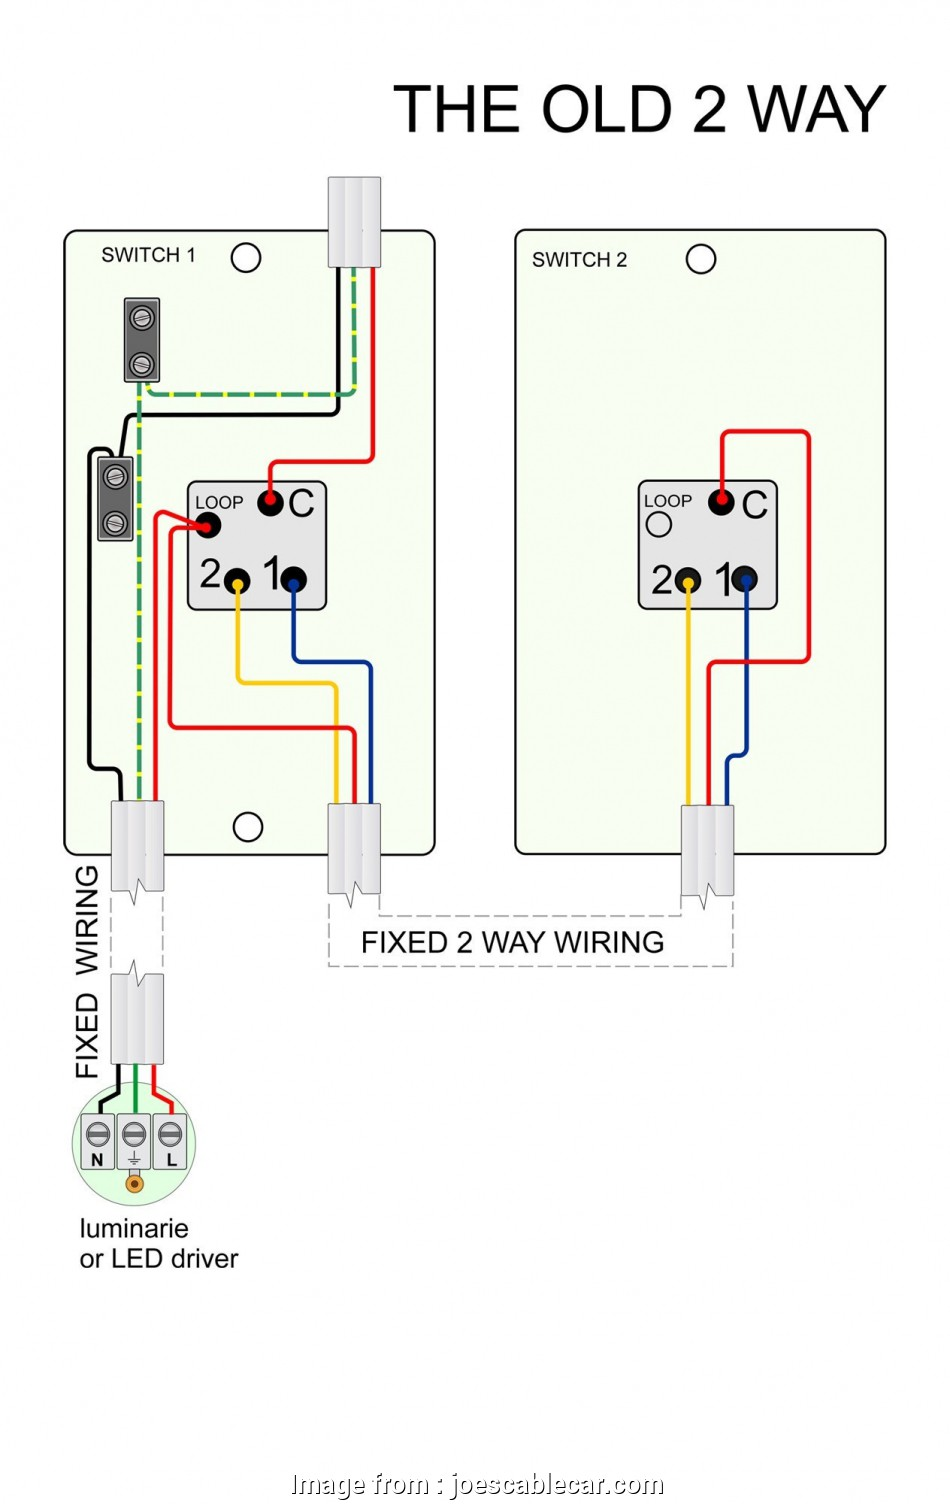 clipsal light switch wiring diagram Wiring Diagram, Clipsal Light Switch 2019, Way Switch Wiring Diagram Nz, Light In 2 Afif 12 Brilliant Clipsal Light Switch Wiring Diagram Solutions